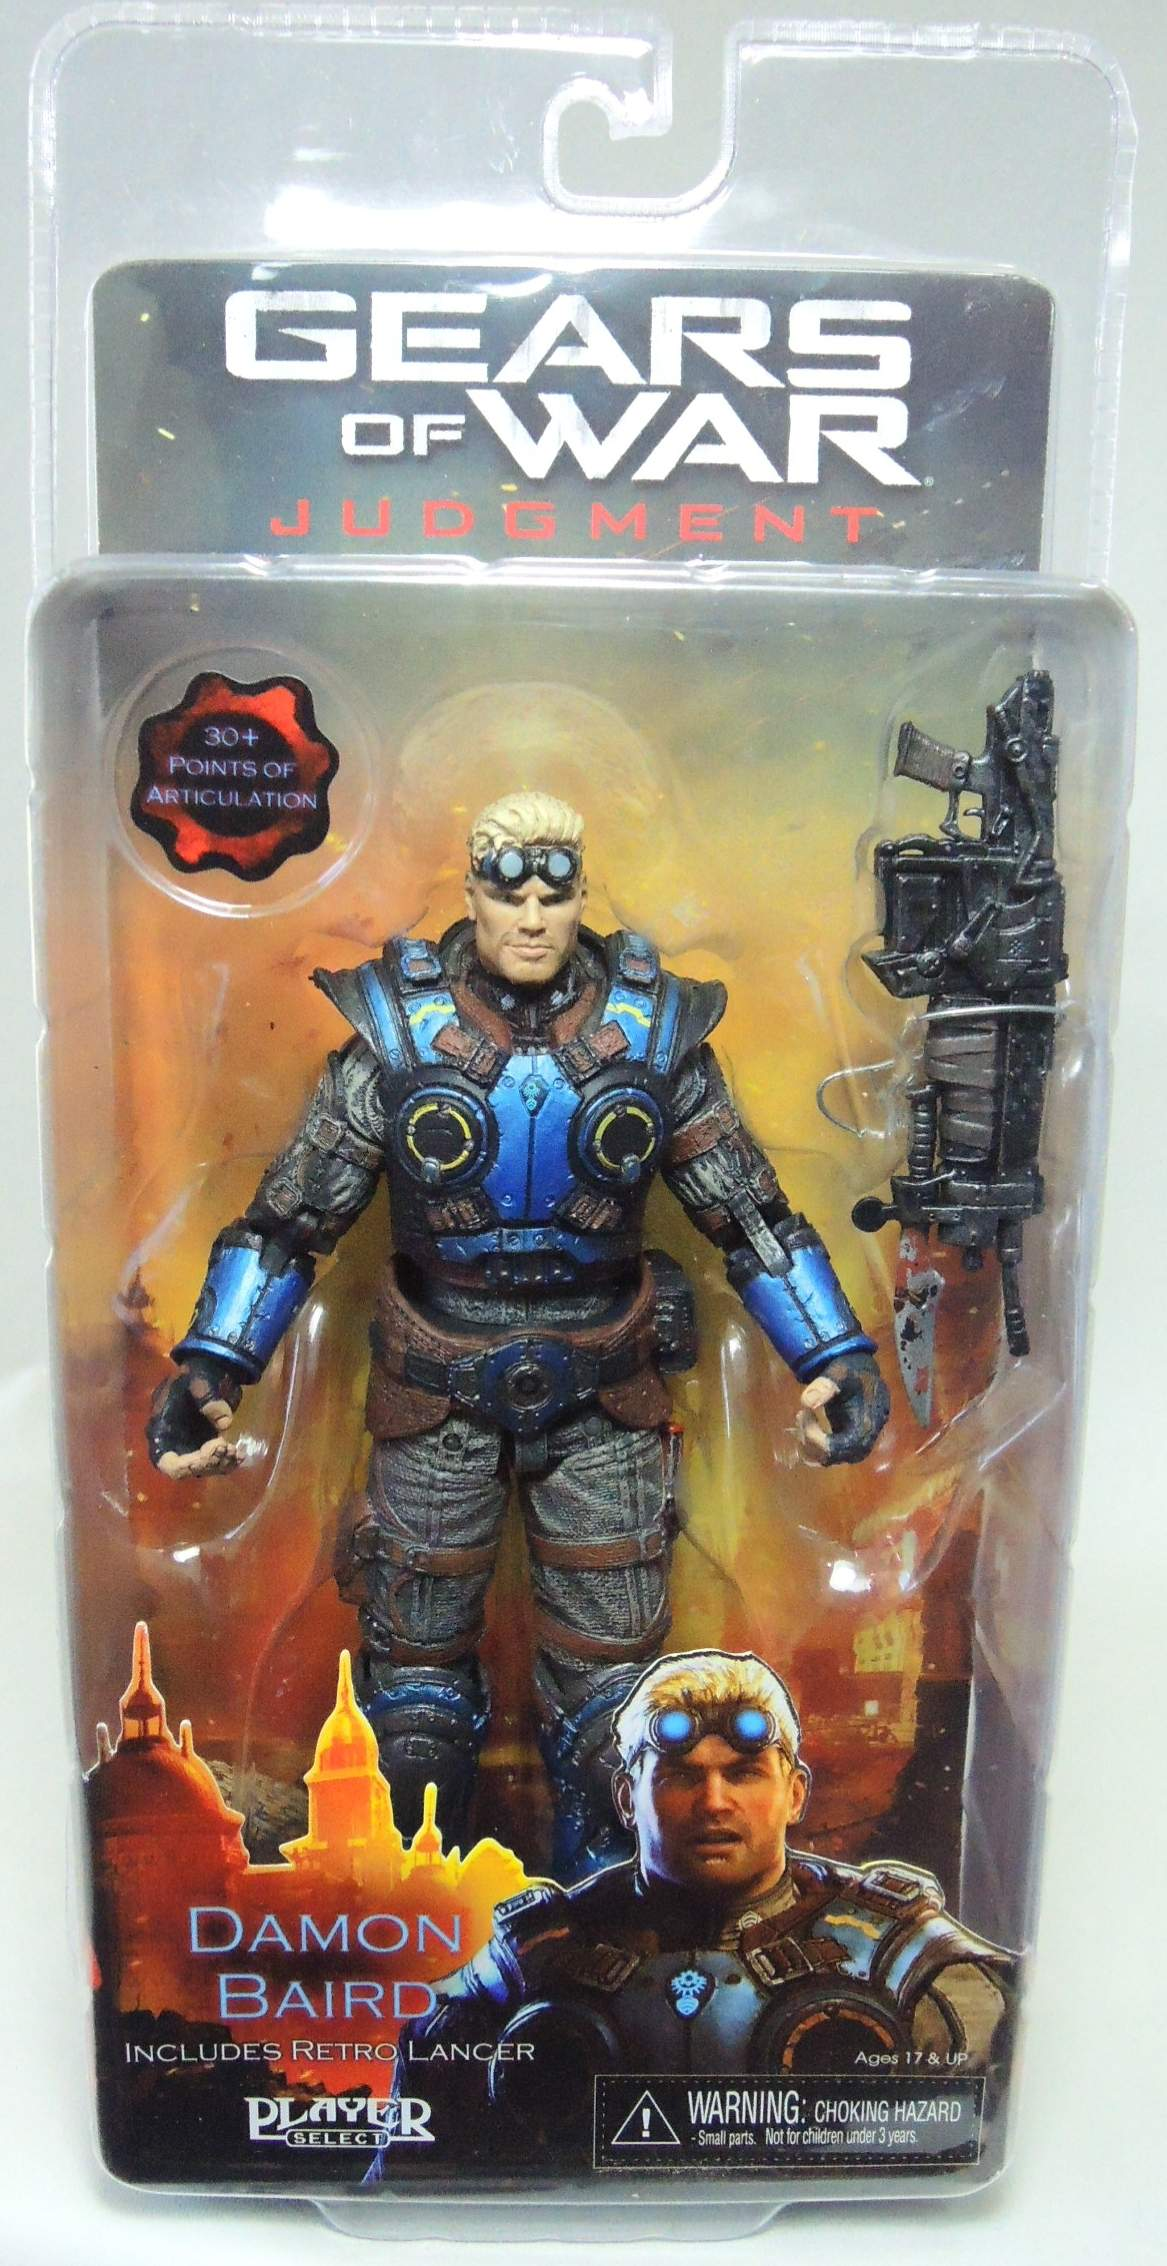 NECA Gears of War 7 inch Figure - Damon Baird